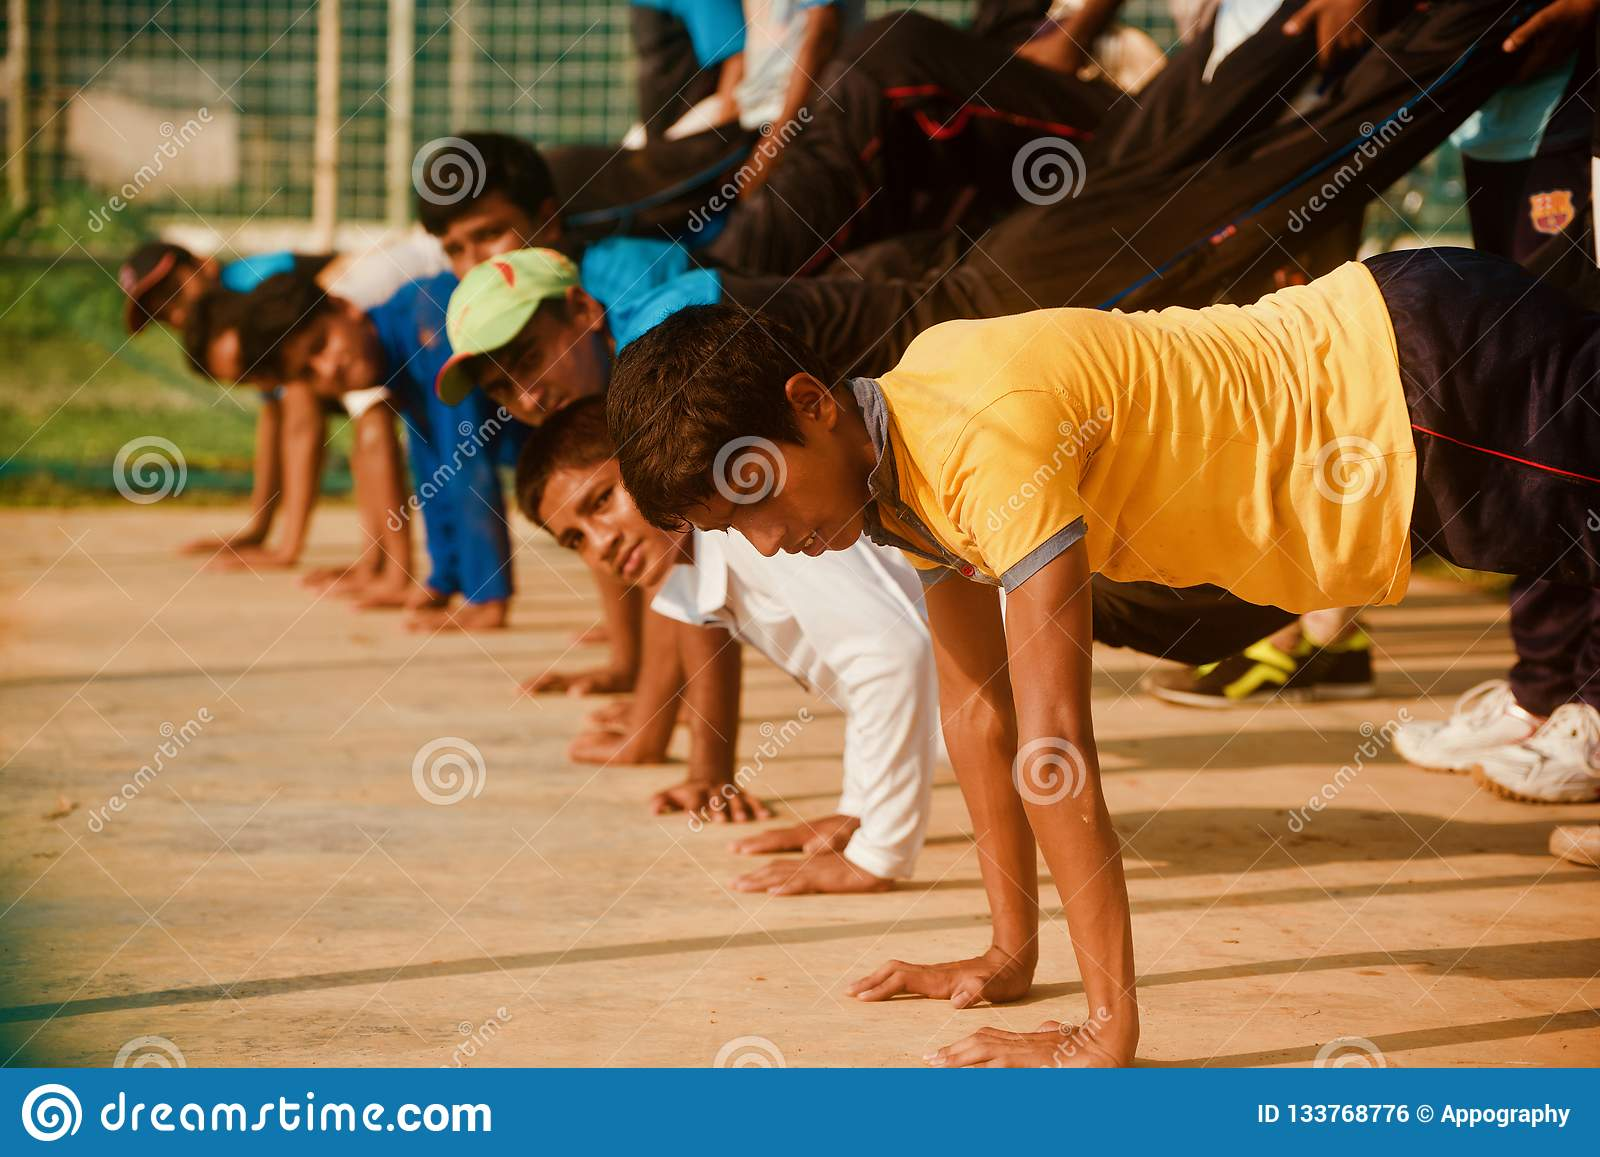 Young boys doing exercise in a group unique photo